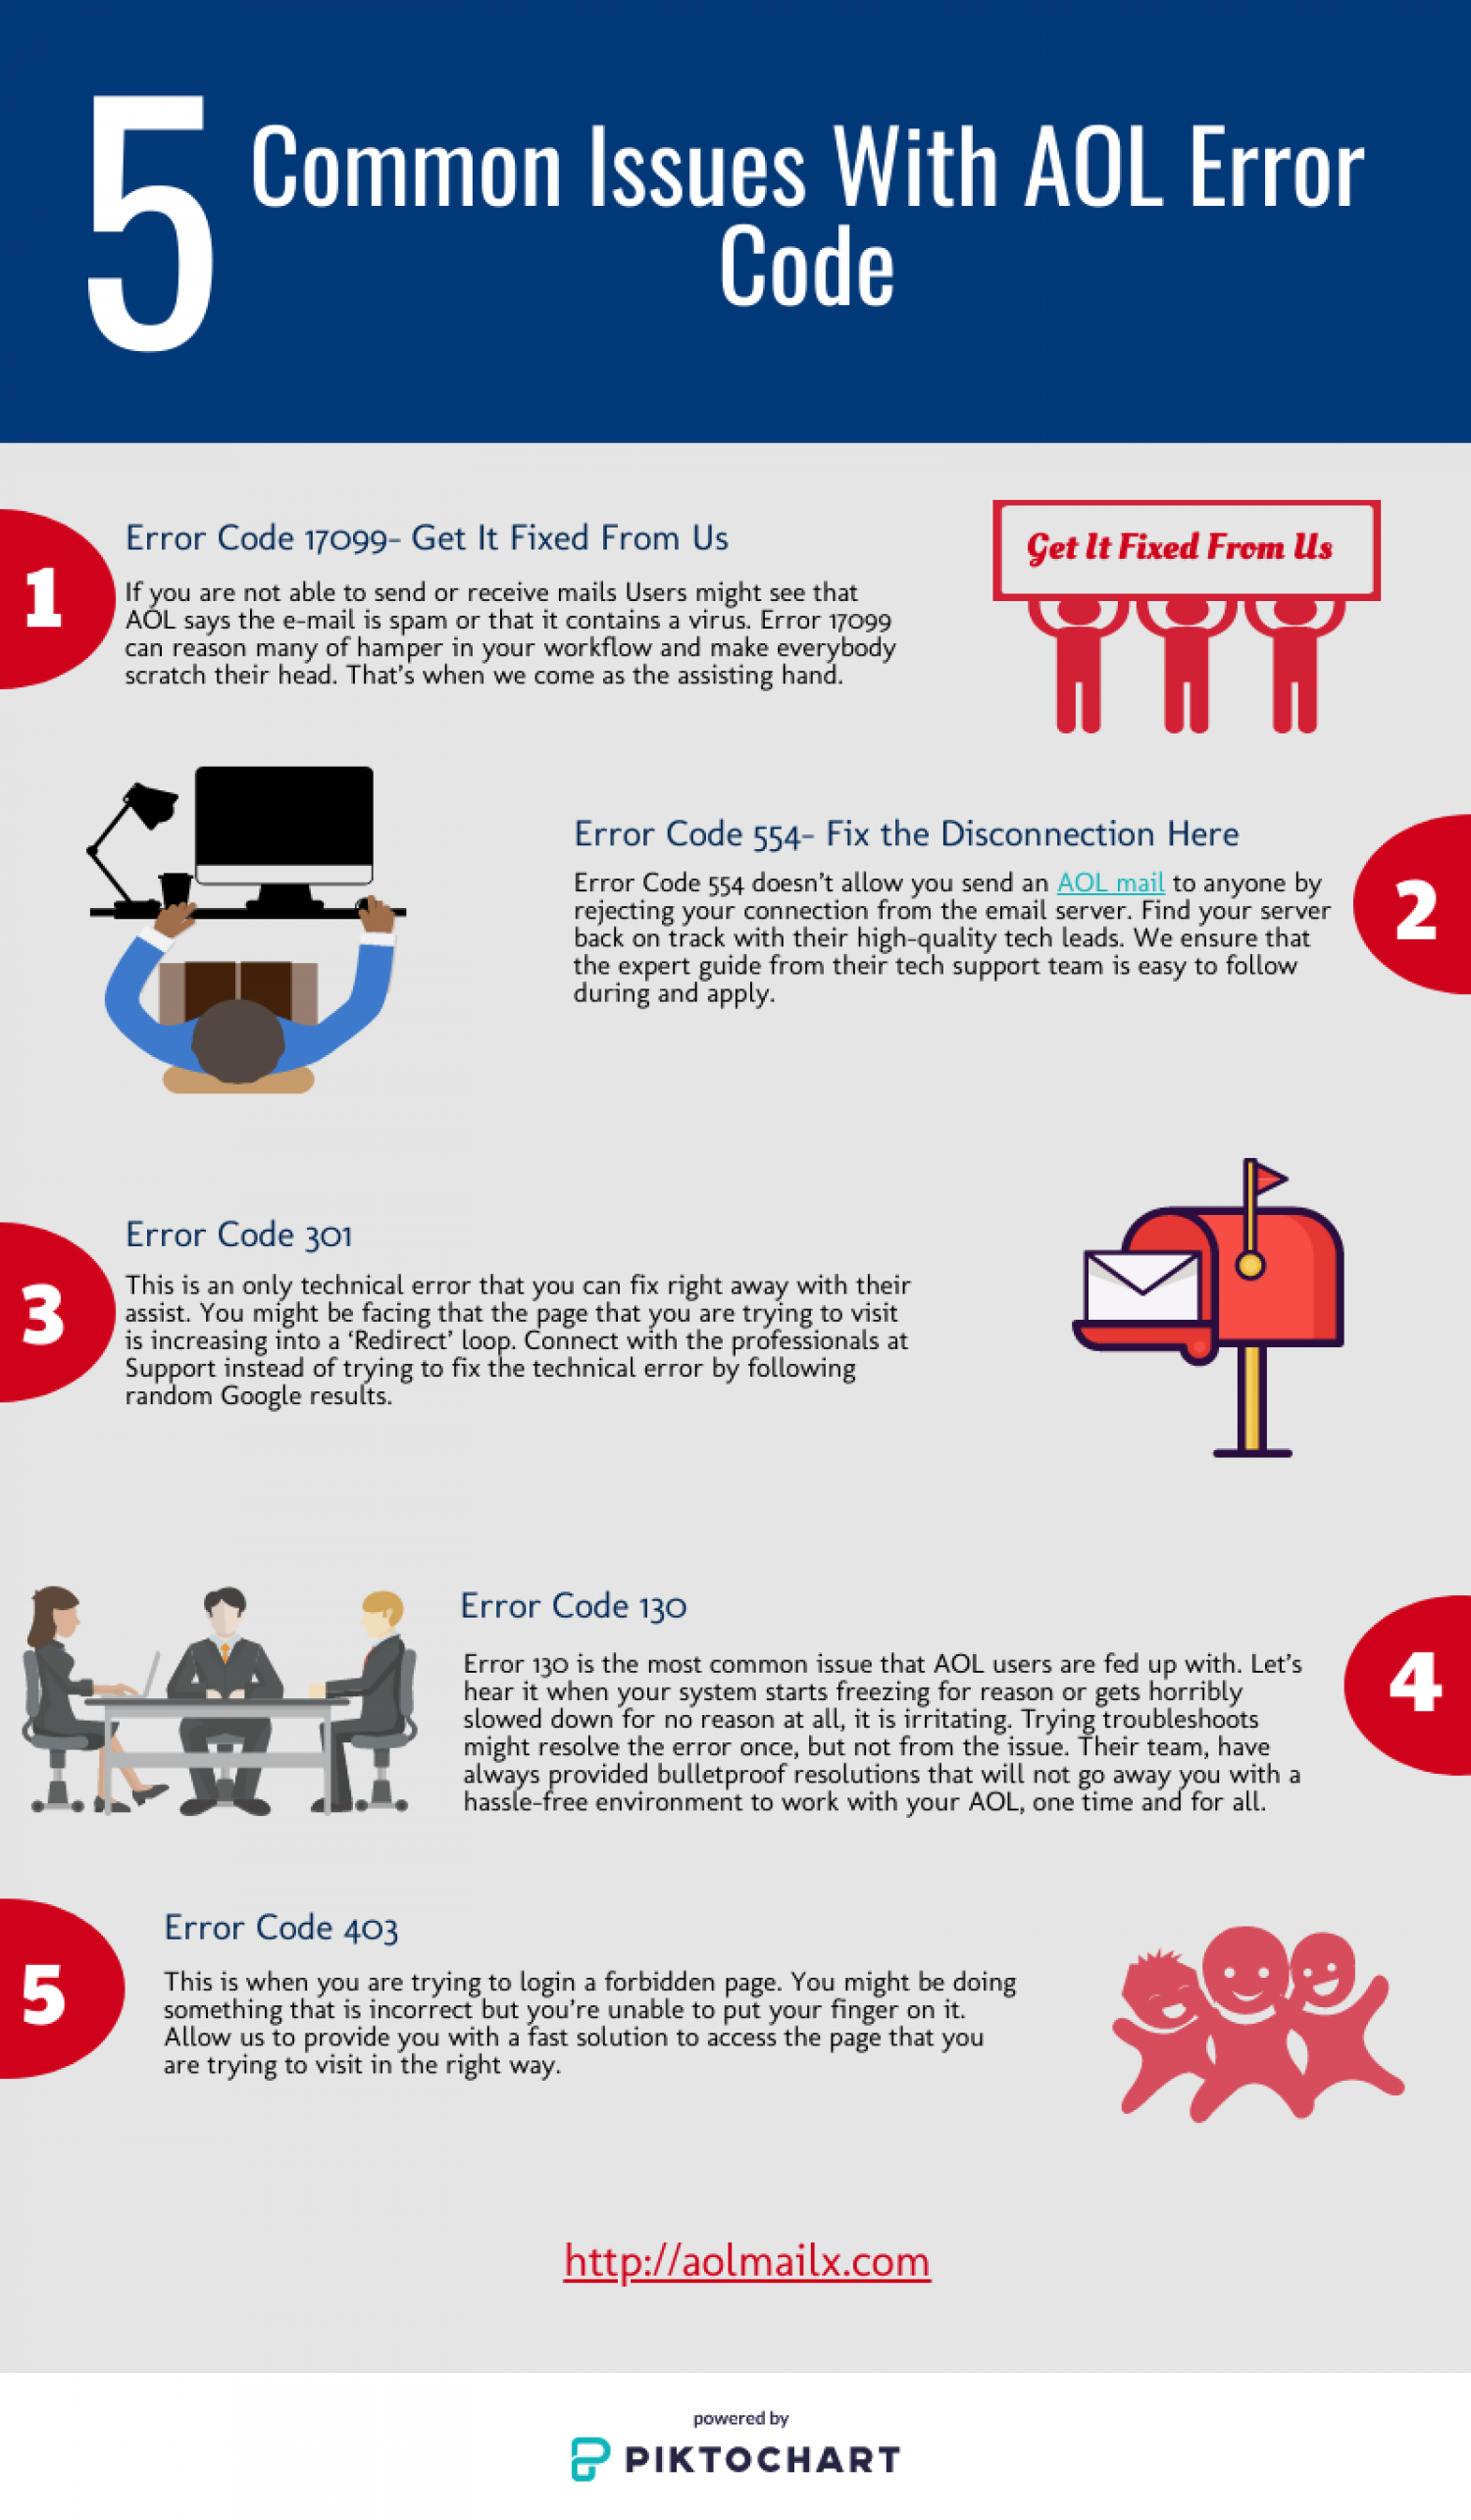 How to fix common issues with AOL error code? Infographic